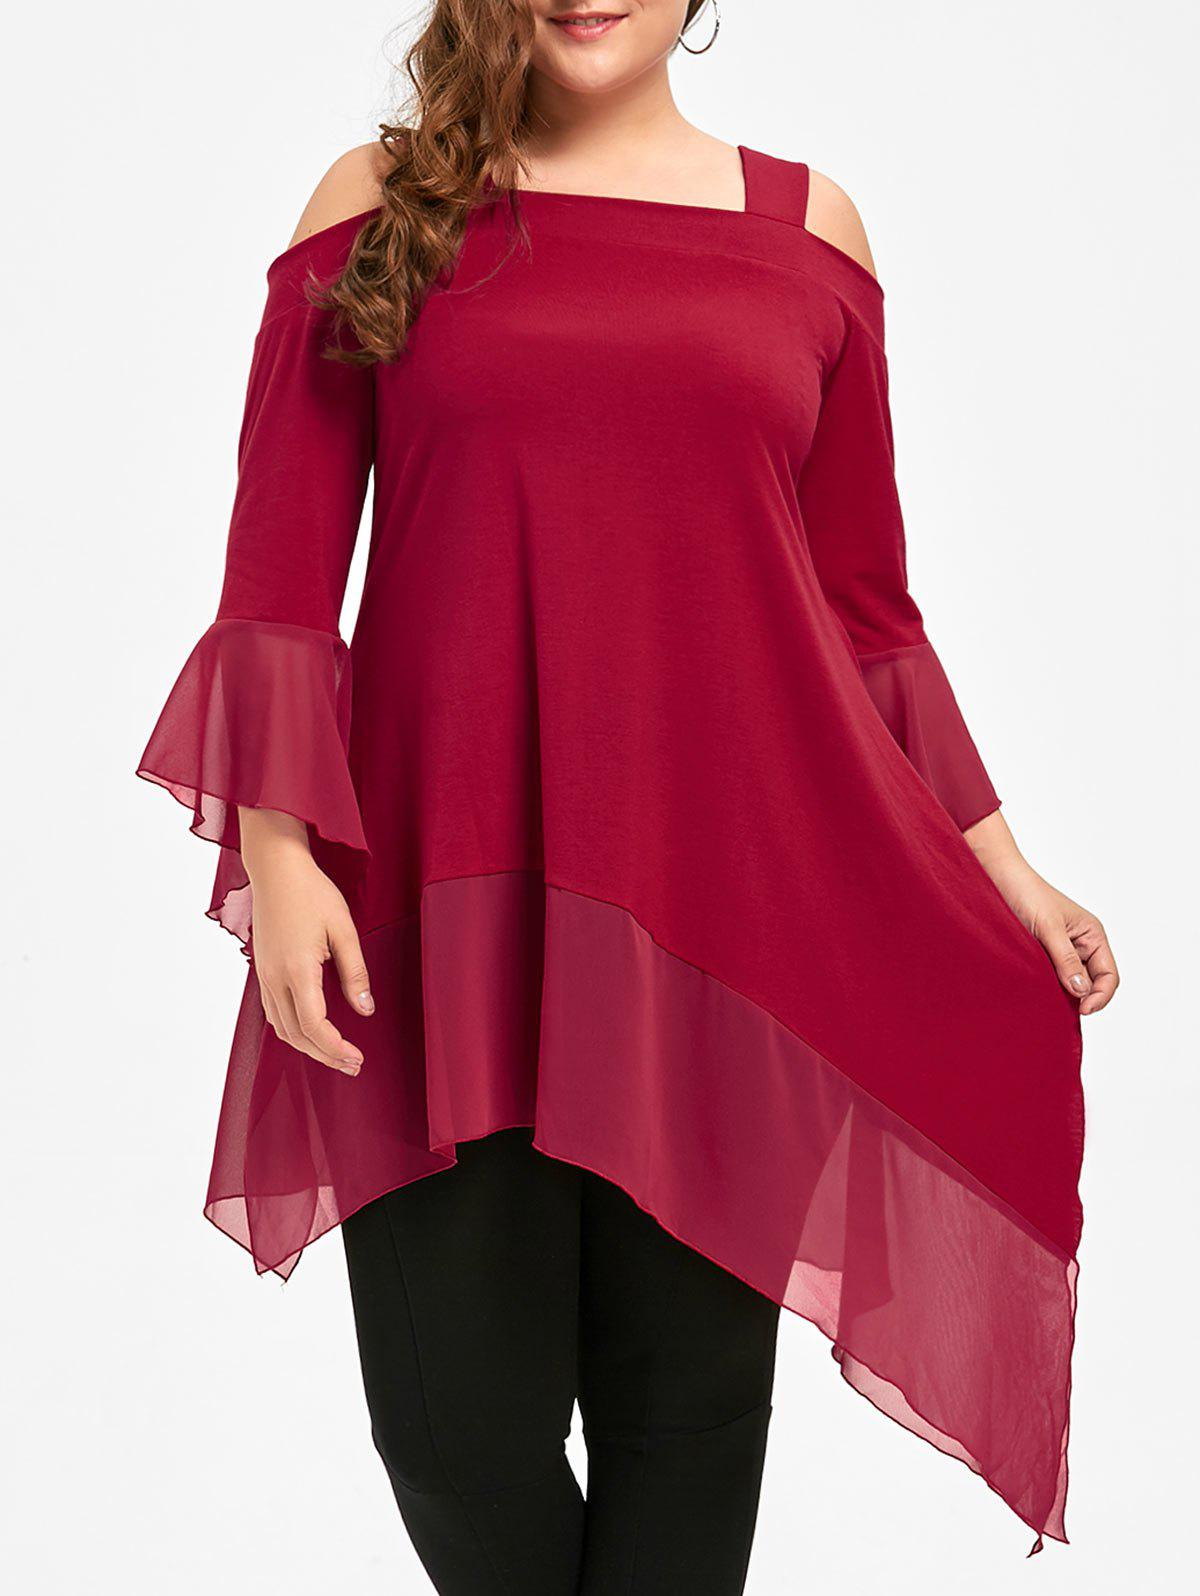 Plus Size Open Shoulder Asymmetric Tunic TopWOMEN<br><br>Size: 4XL; Color: RED; Material: Polyester,Spandex; Shirt Length: Long; Sleeve Length: Three Quarter; Collar: Square Neck; Style: Fashion; Season: Fall,Spring; Pattern Type: Solid; Weight: 0.3500kg; Package Contents: 1 x Top;